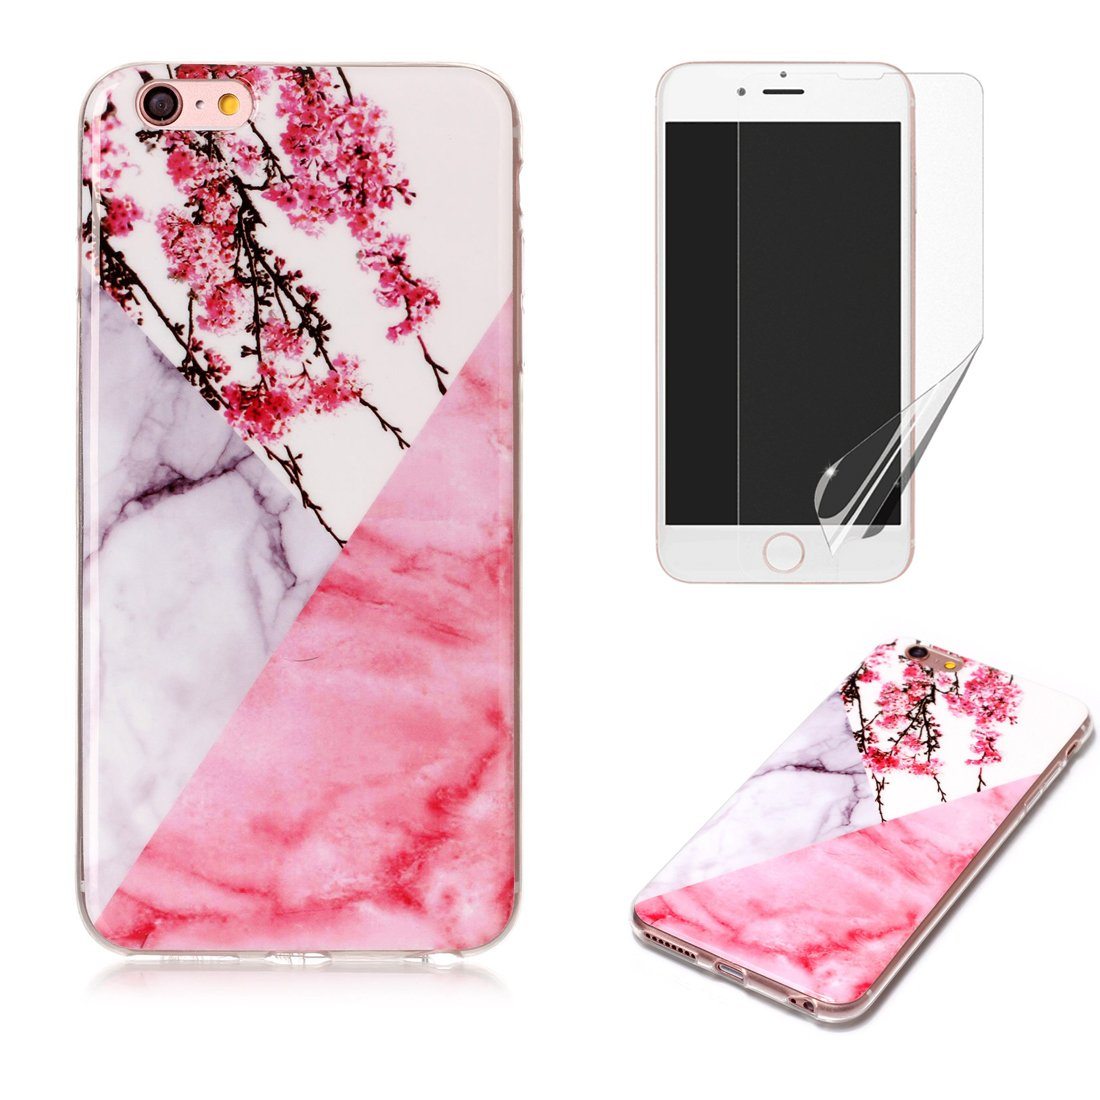 for iPhone 5C Marble Case with Screen Protector, OYIME Creative Glossy Purple & White Marble Pattern Design Protective Bumper Soft Silicone Slim Thin Rubber Luxury Shockproof Cover